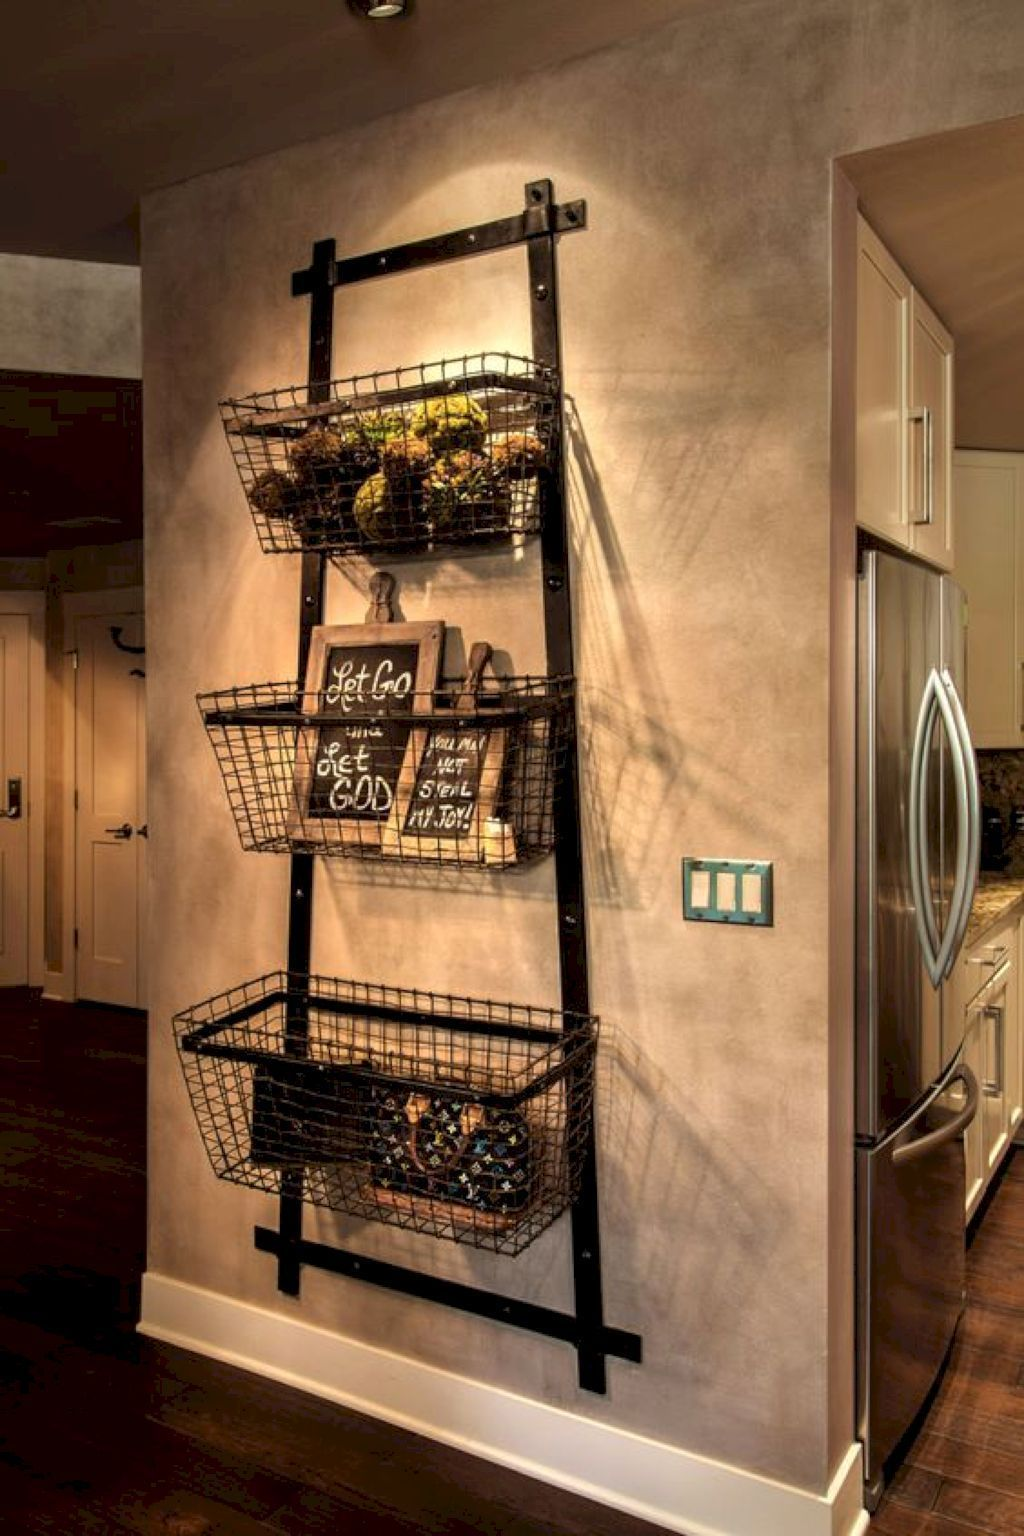 Awesome 31 Amazing Farmhouse Kitchen Decor Ideas Https Homeylife Com 31 Amazing Farmhouse Kitchen Decor Ideas Sweet Home Rustic Entryway Home